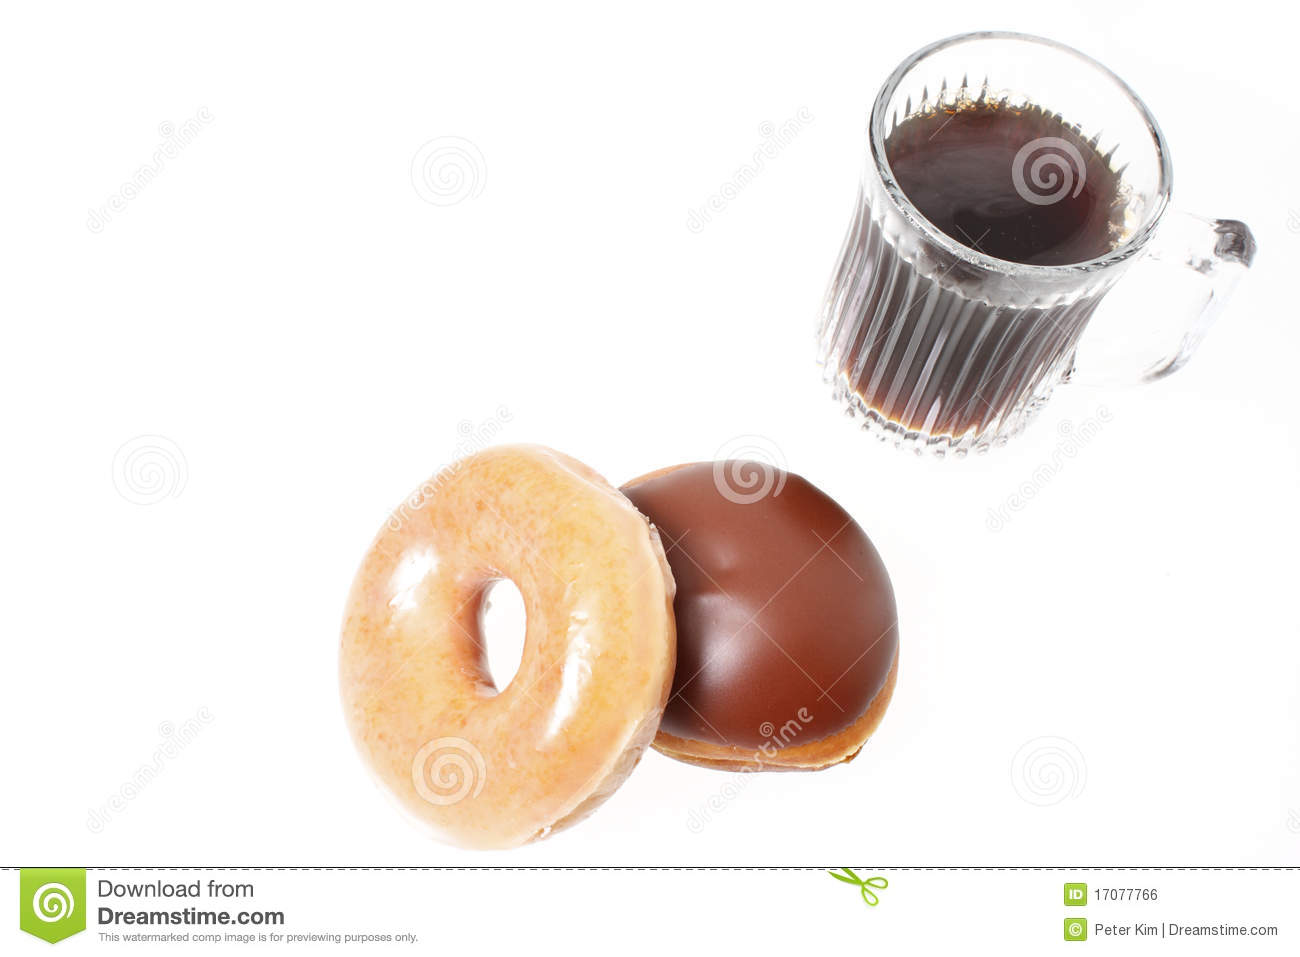 California Donut Shop Businesses For Sale And Wanted To Buy Postings, Franchises And Opportunities